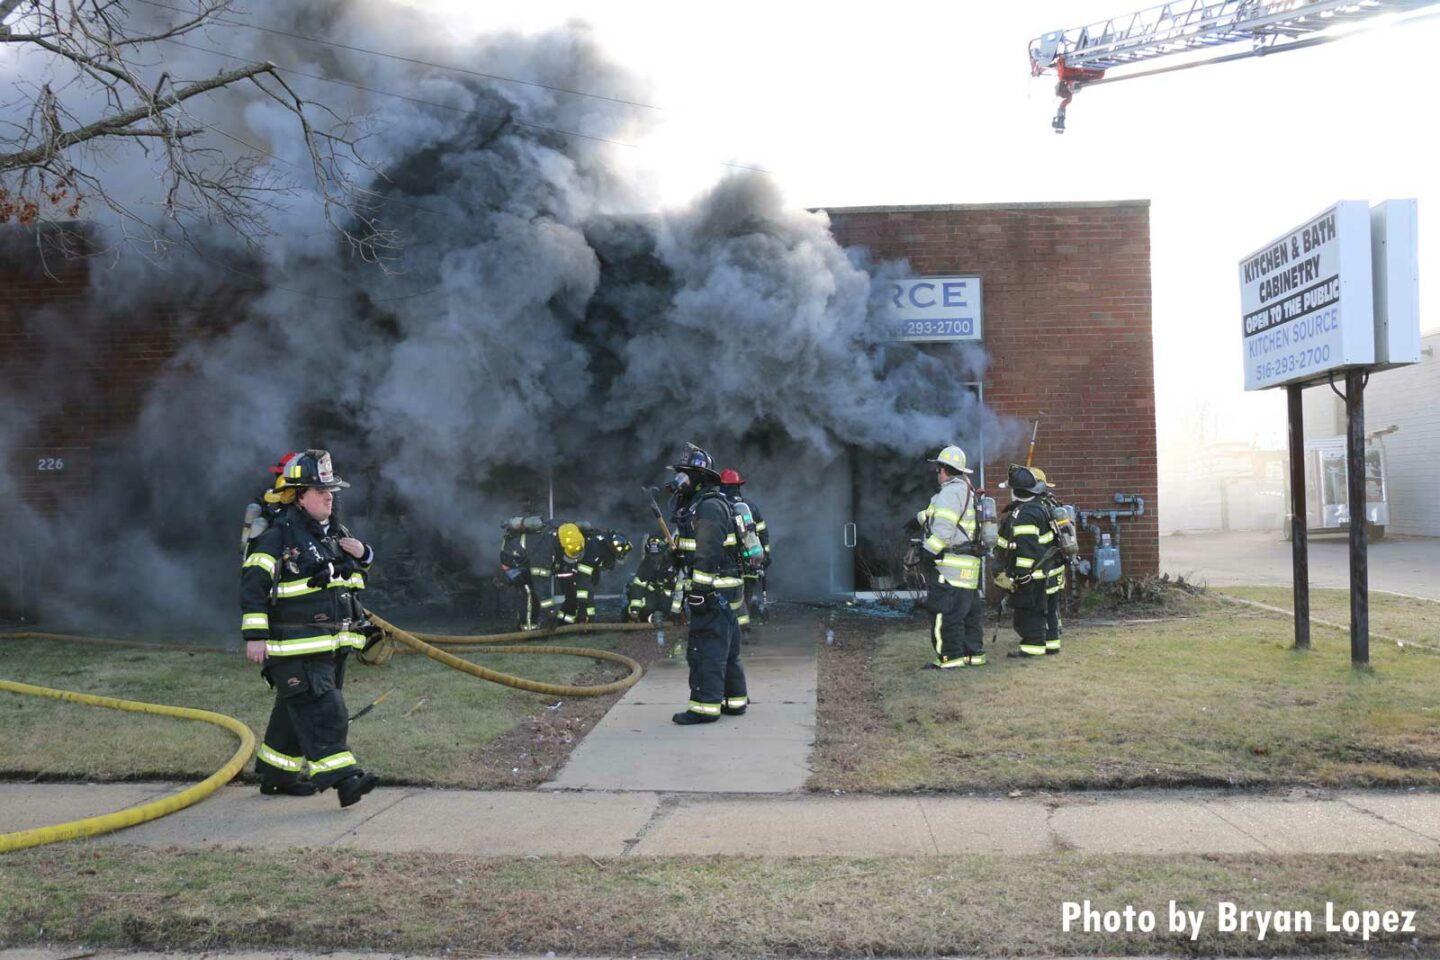 Firefighters with hoselines and smoke condition emanating from building